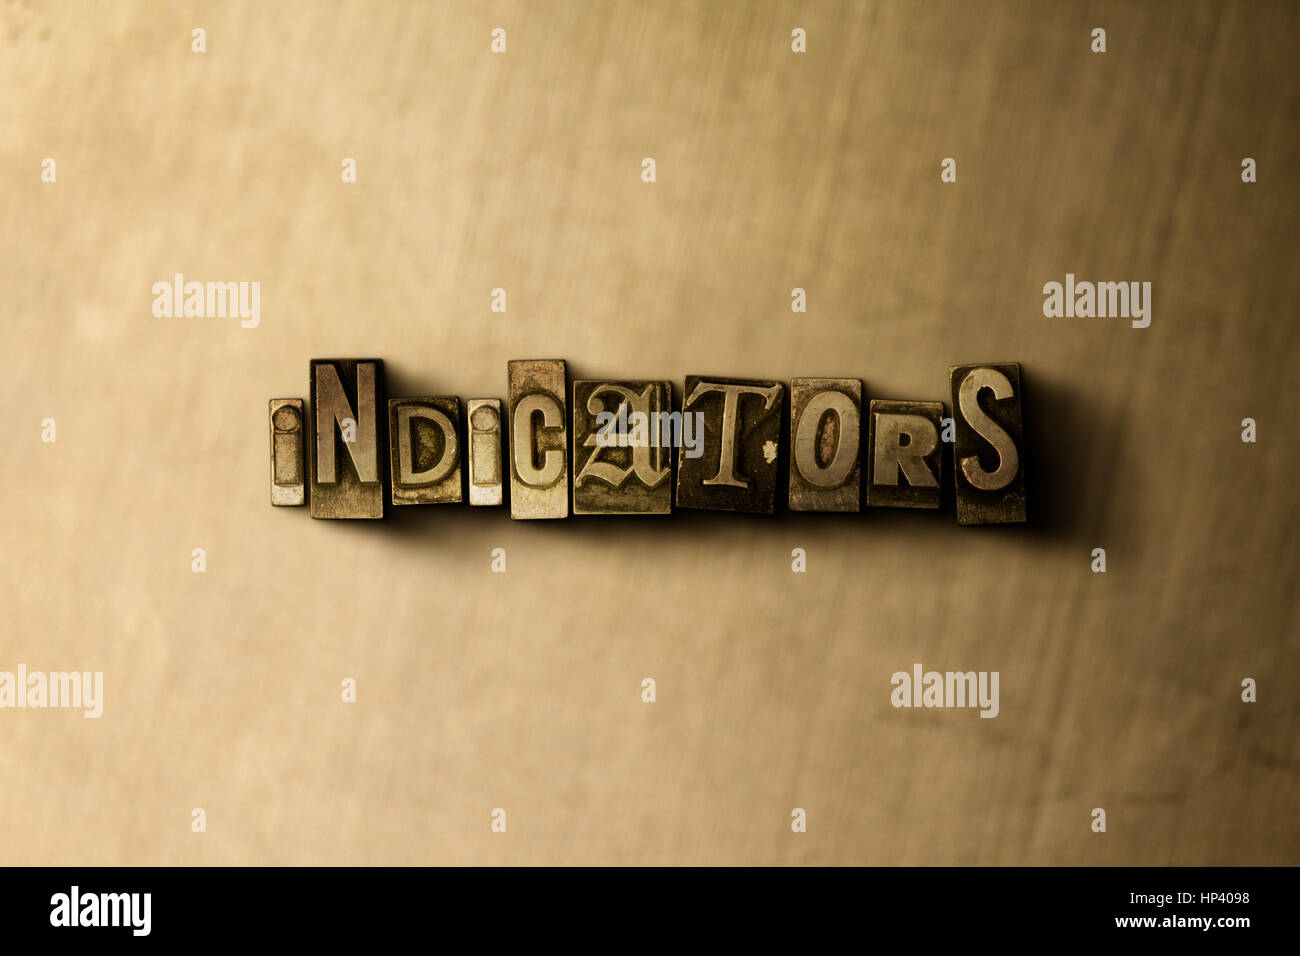 INDICATORS - close-up of grungy vintage typeset word on metal backdrop. Royalty free stock illustration.  Can be - Stock Image